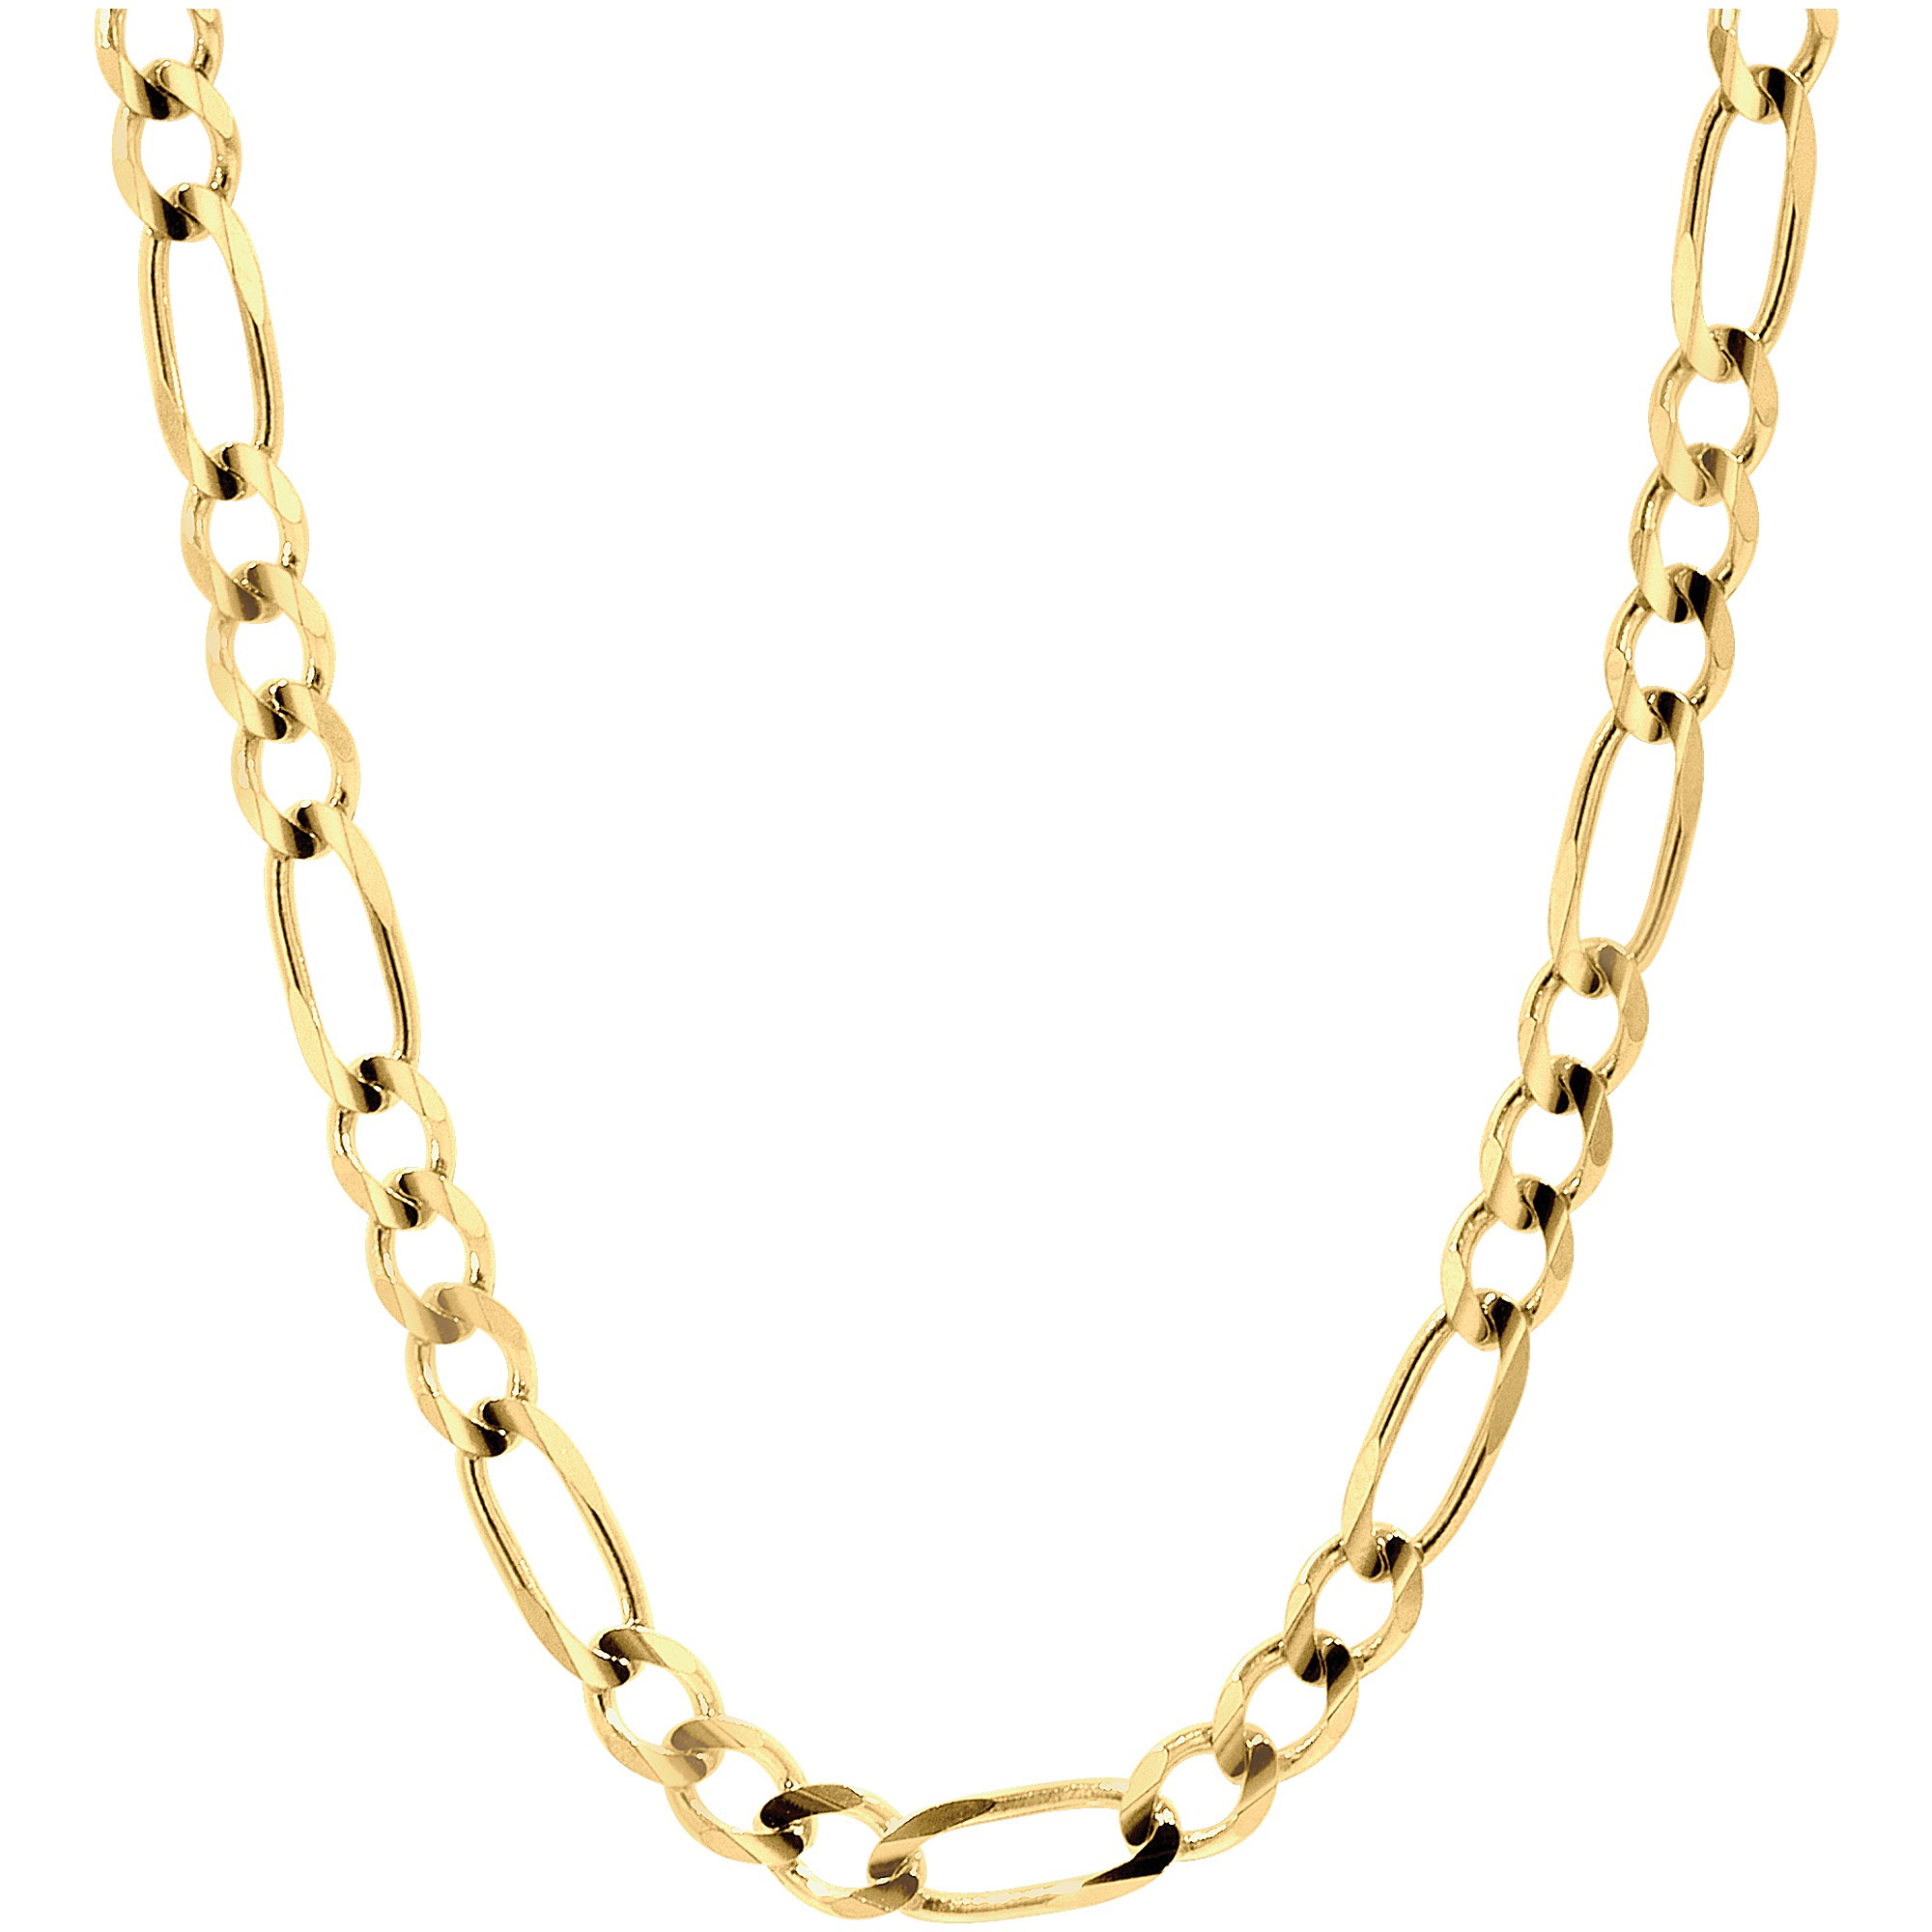 bc6ad9ef2f08 Pori - Jewelers 5MM Figaro Chain Necklace in 10K Solid Gold BOXED -  Walmart.com